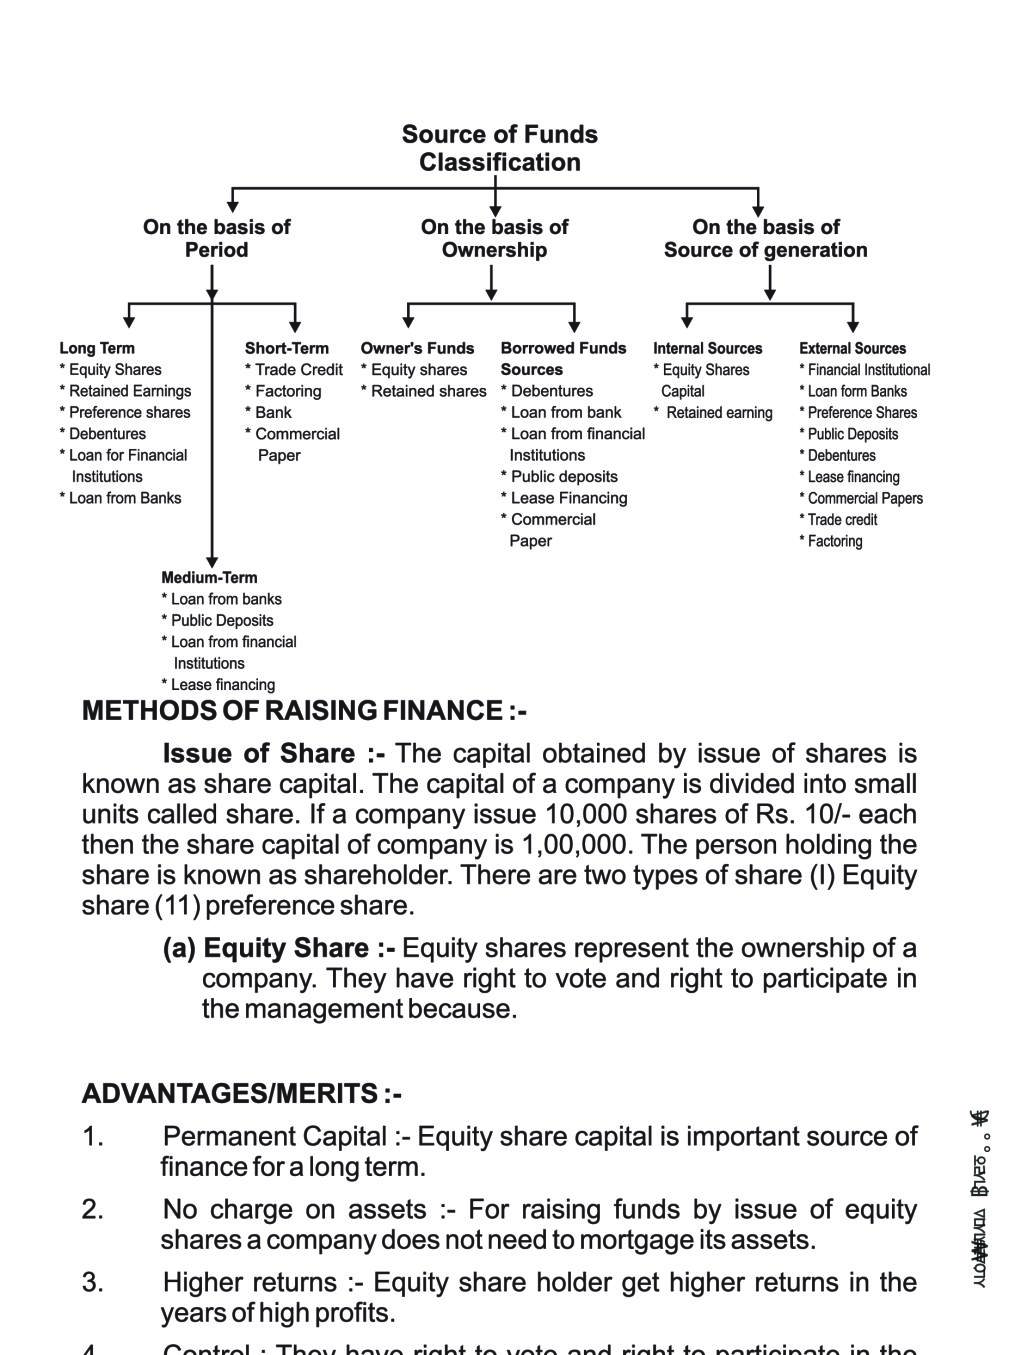 Class 11 Business Studies Notes for Business Finance